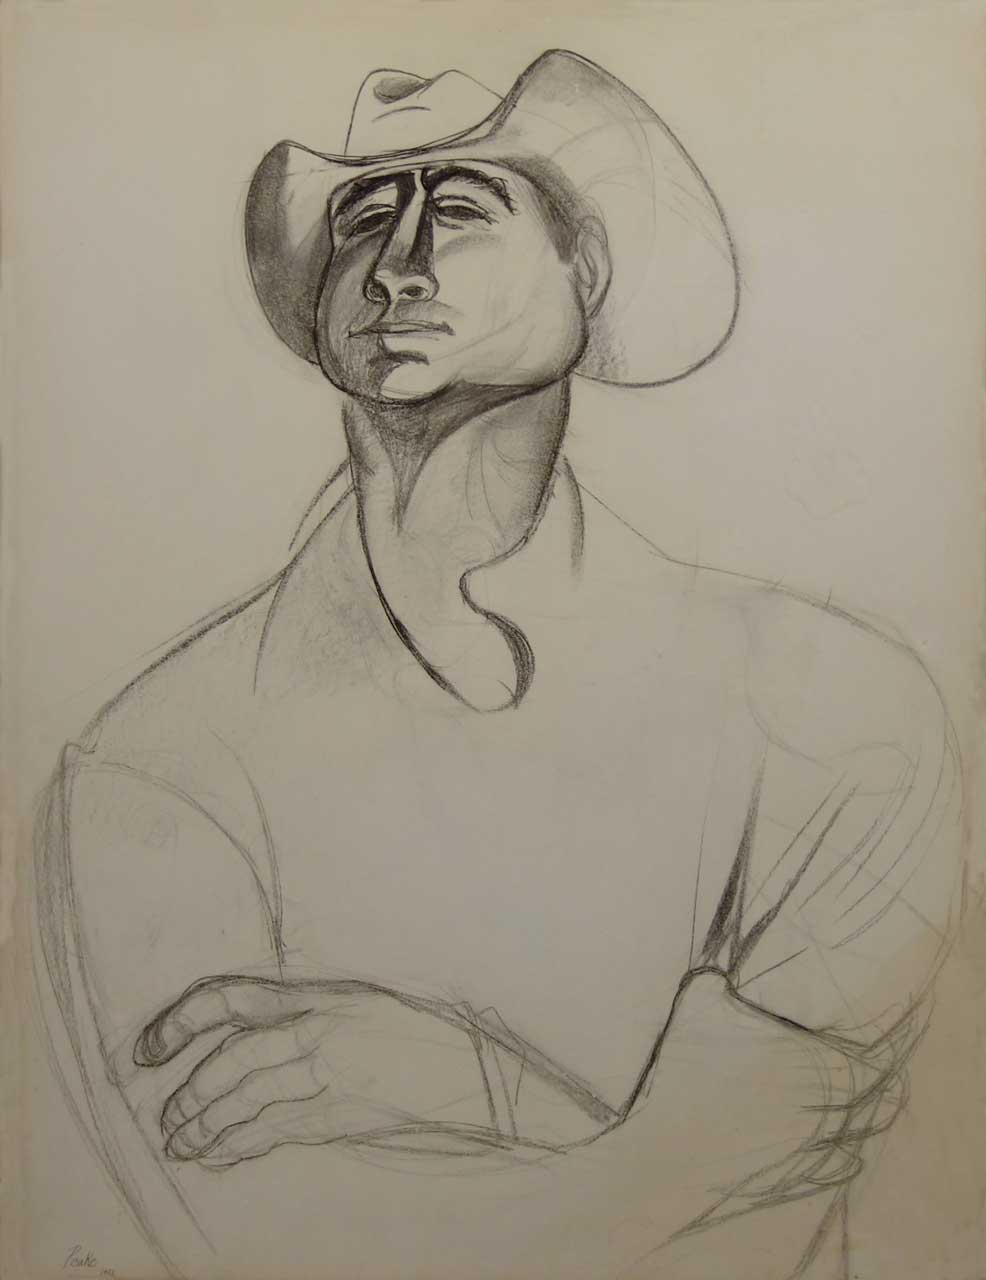 Channig Peake - Self Portrait 1950:51